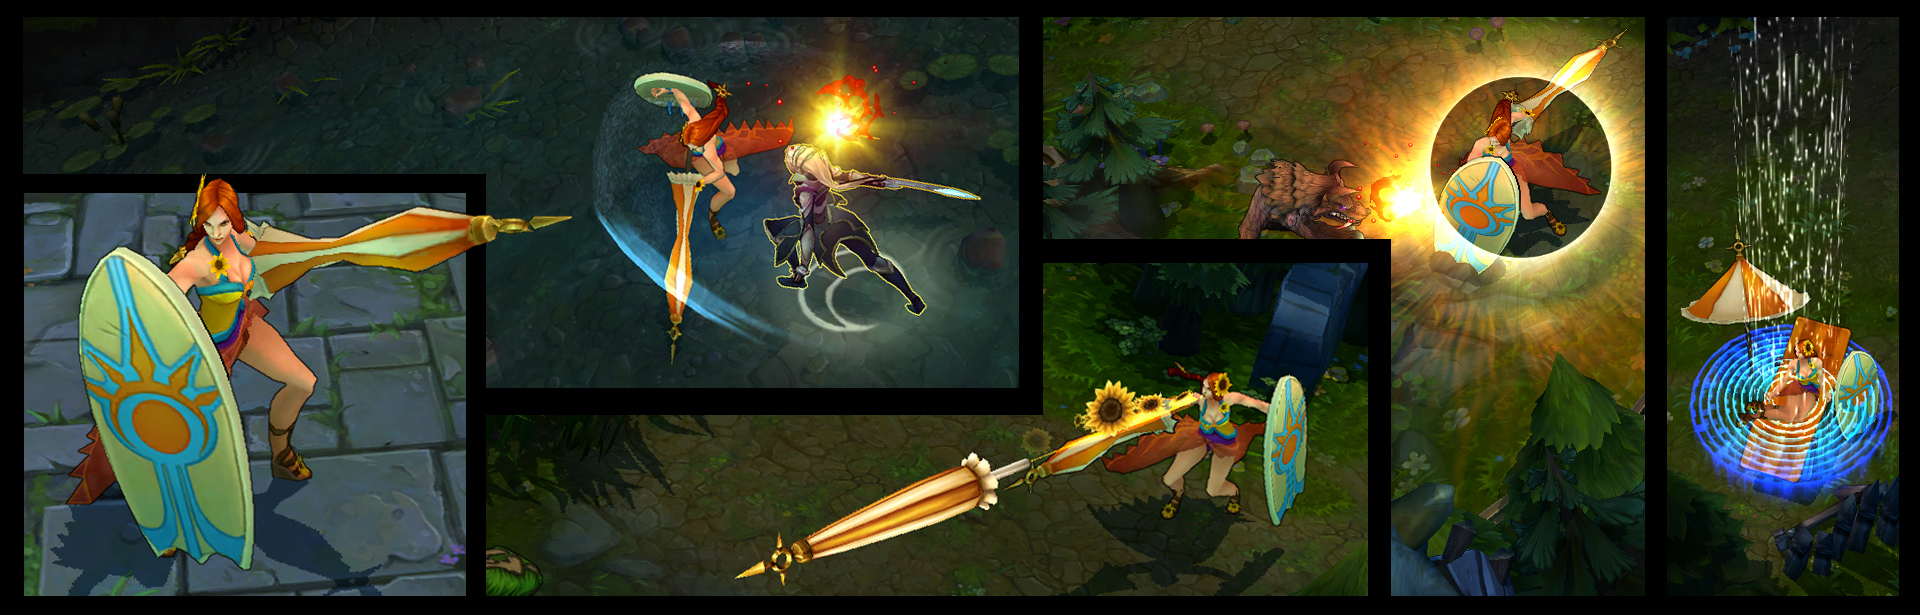 League Of Legends Teases New Champion Adds New Skins